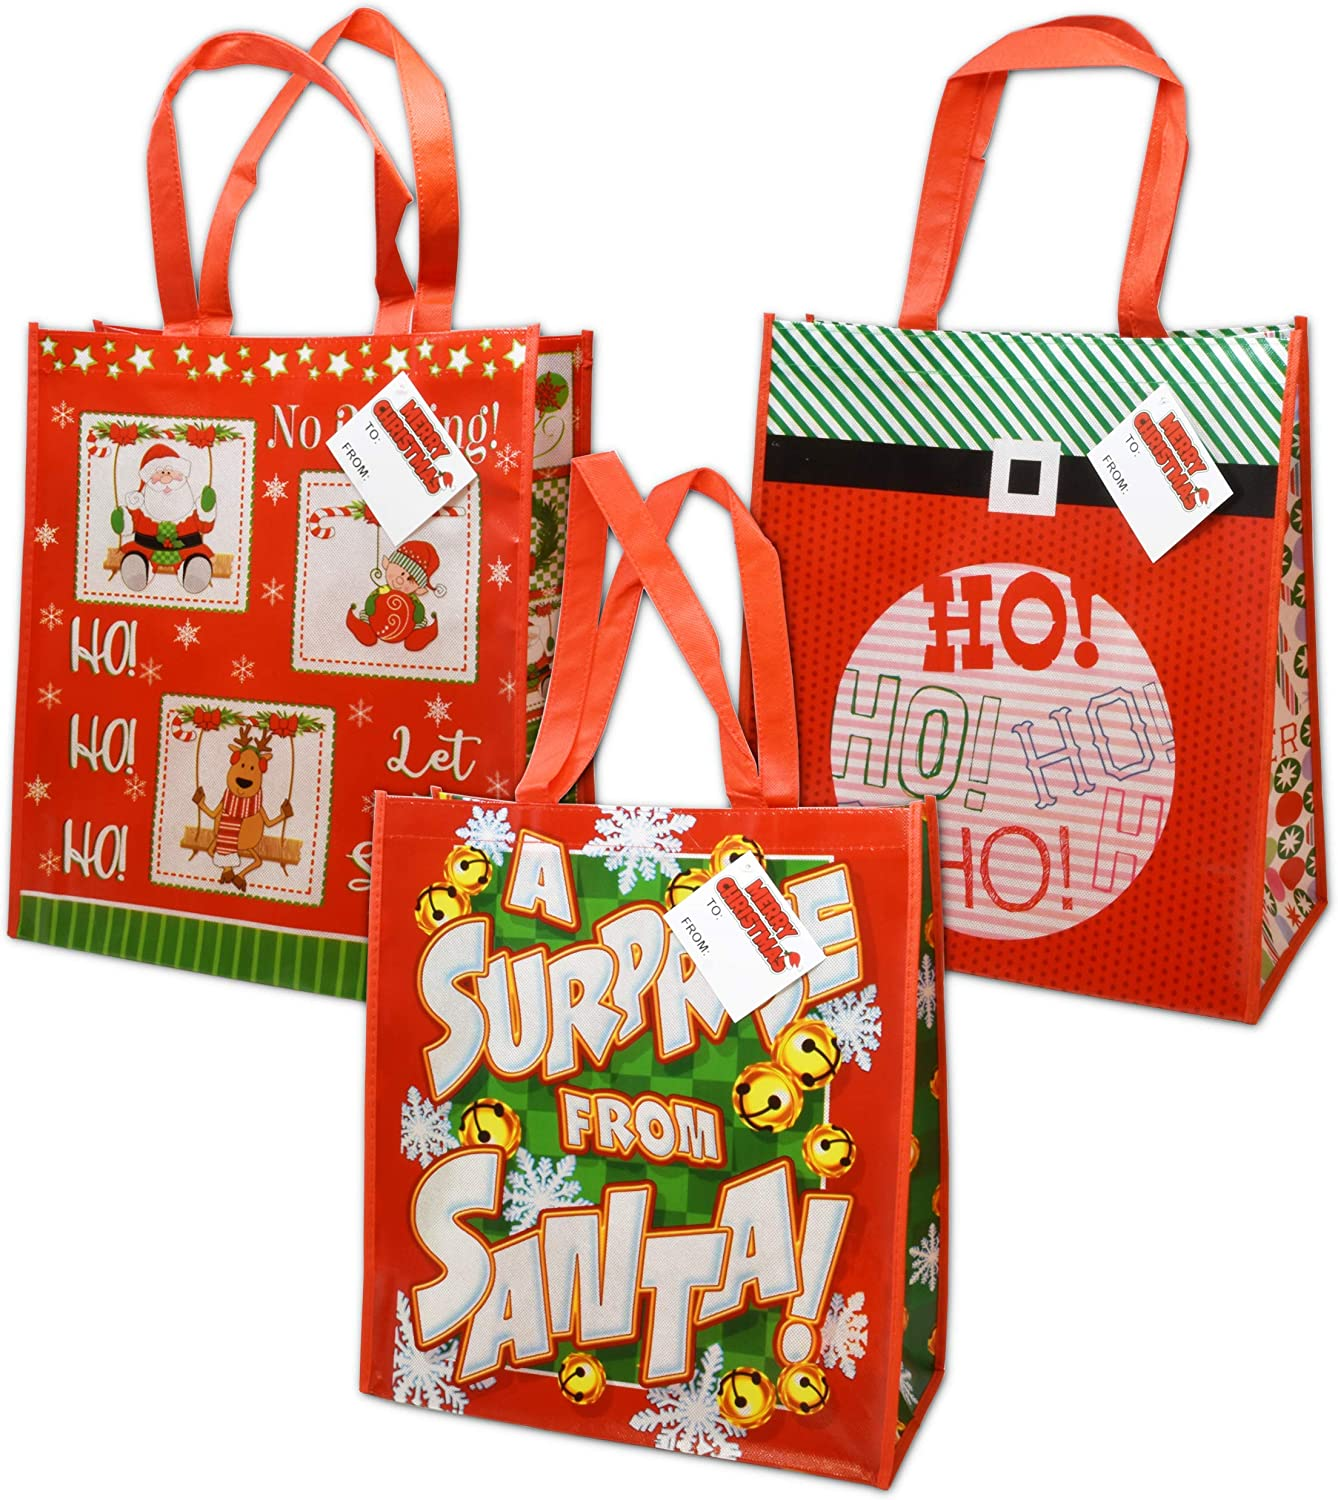 12 Jumbo Christmas Reusable Gift Bag Grocery Shopping Totes for The Holidays